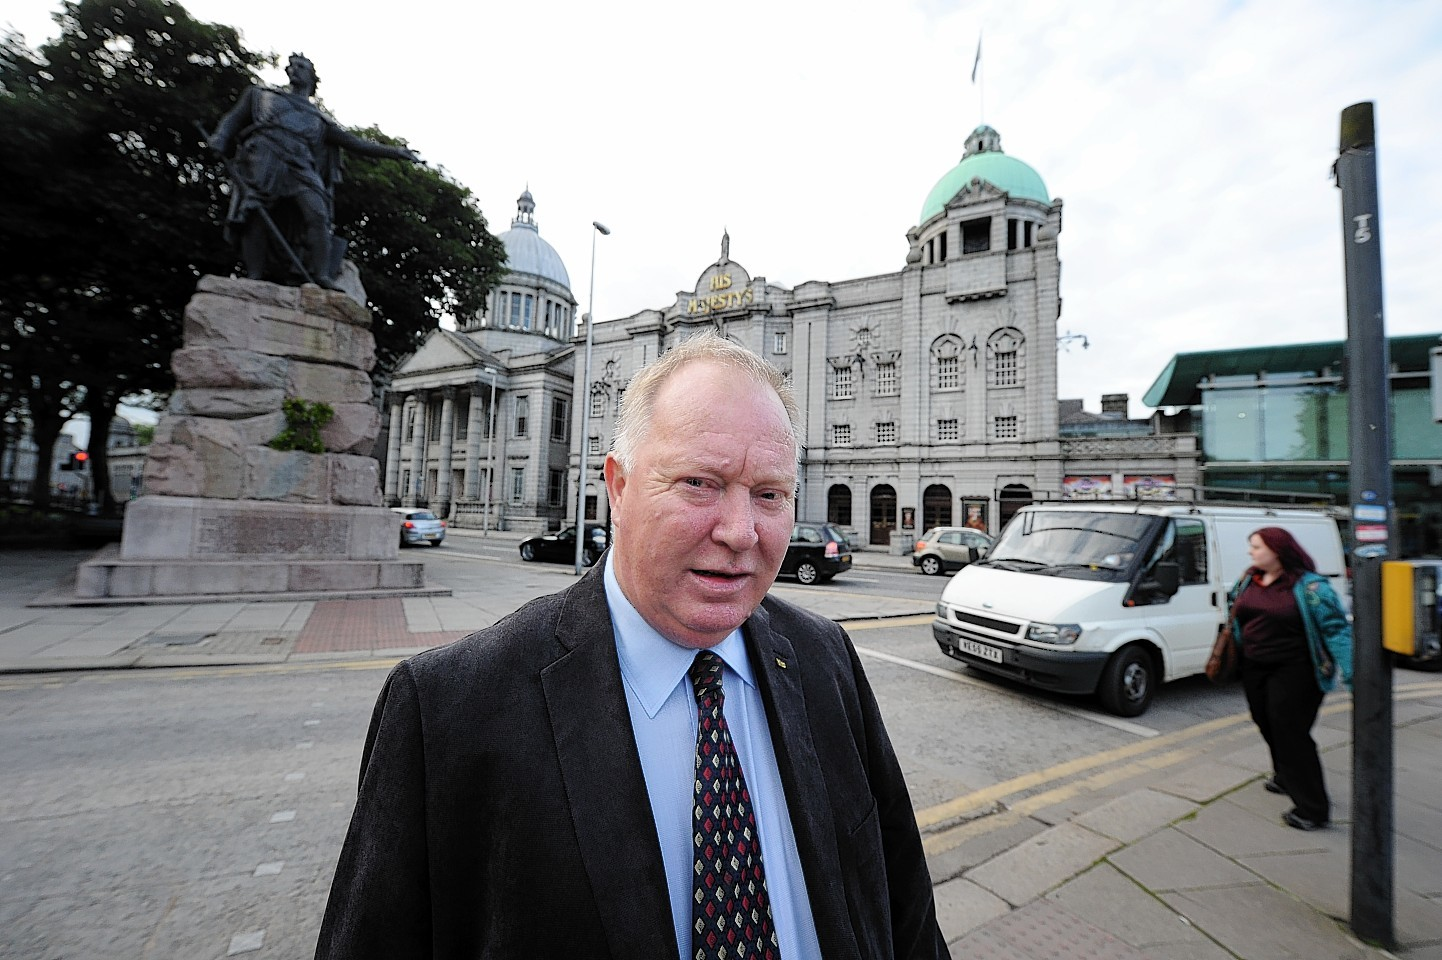 Councillor Bill Cormie of the SNP group